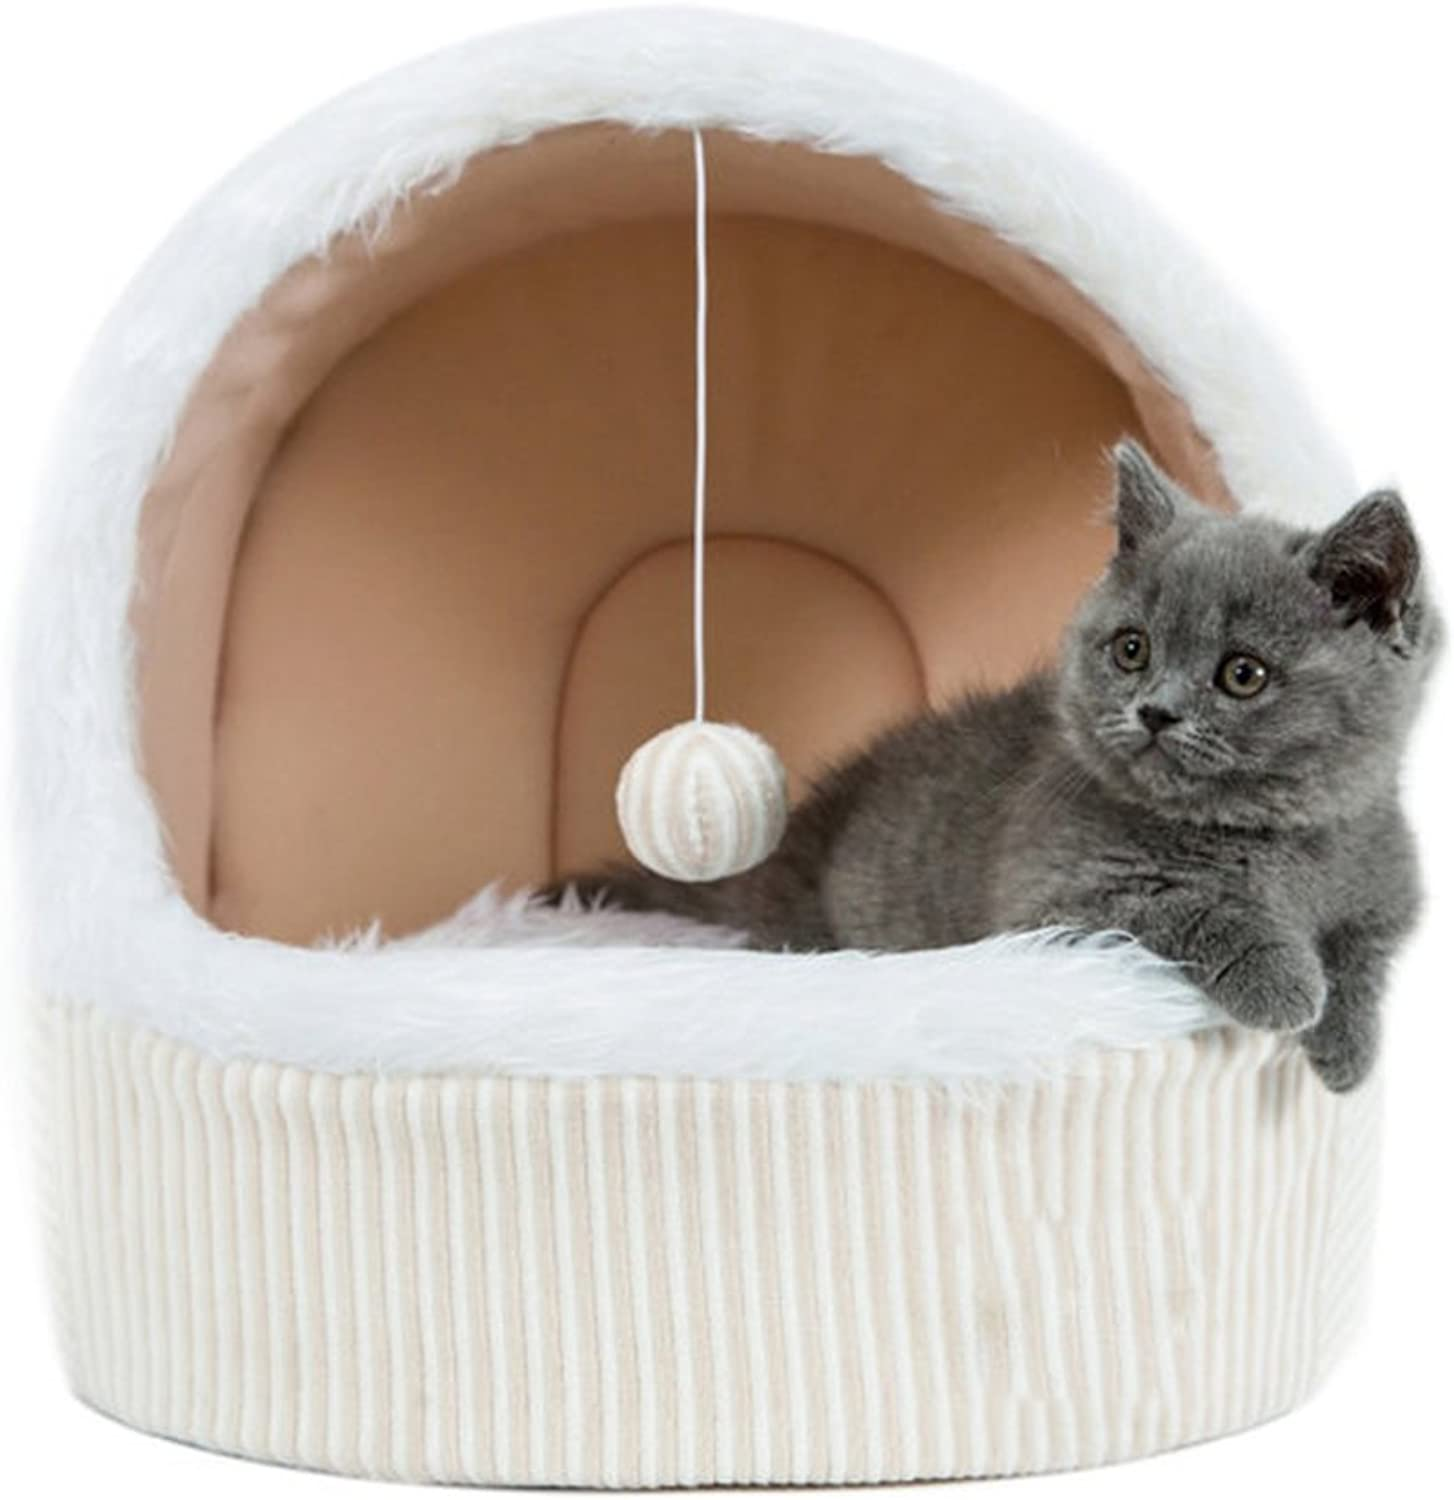 NSHK Cat Bed Cave Playing Tent Winter Mongolian Cat Yart Kitten Snug With Ball Hanging Toy Detachable DoubleSided Mat Cat's Paradise, Beige,S